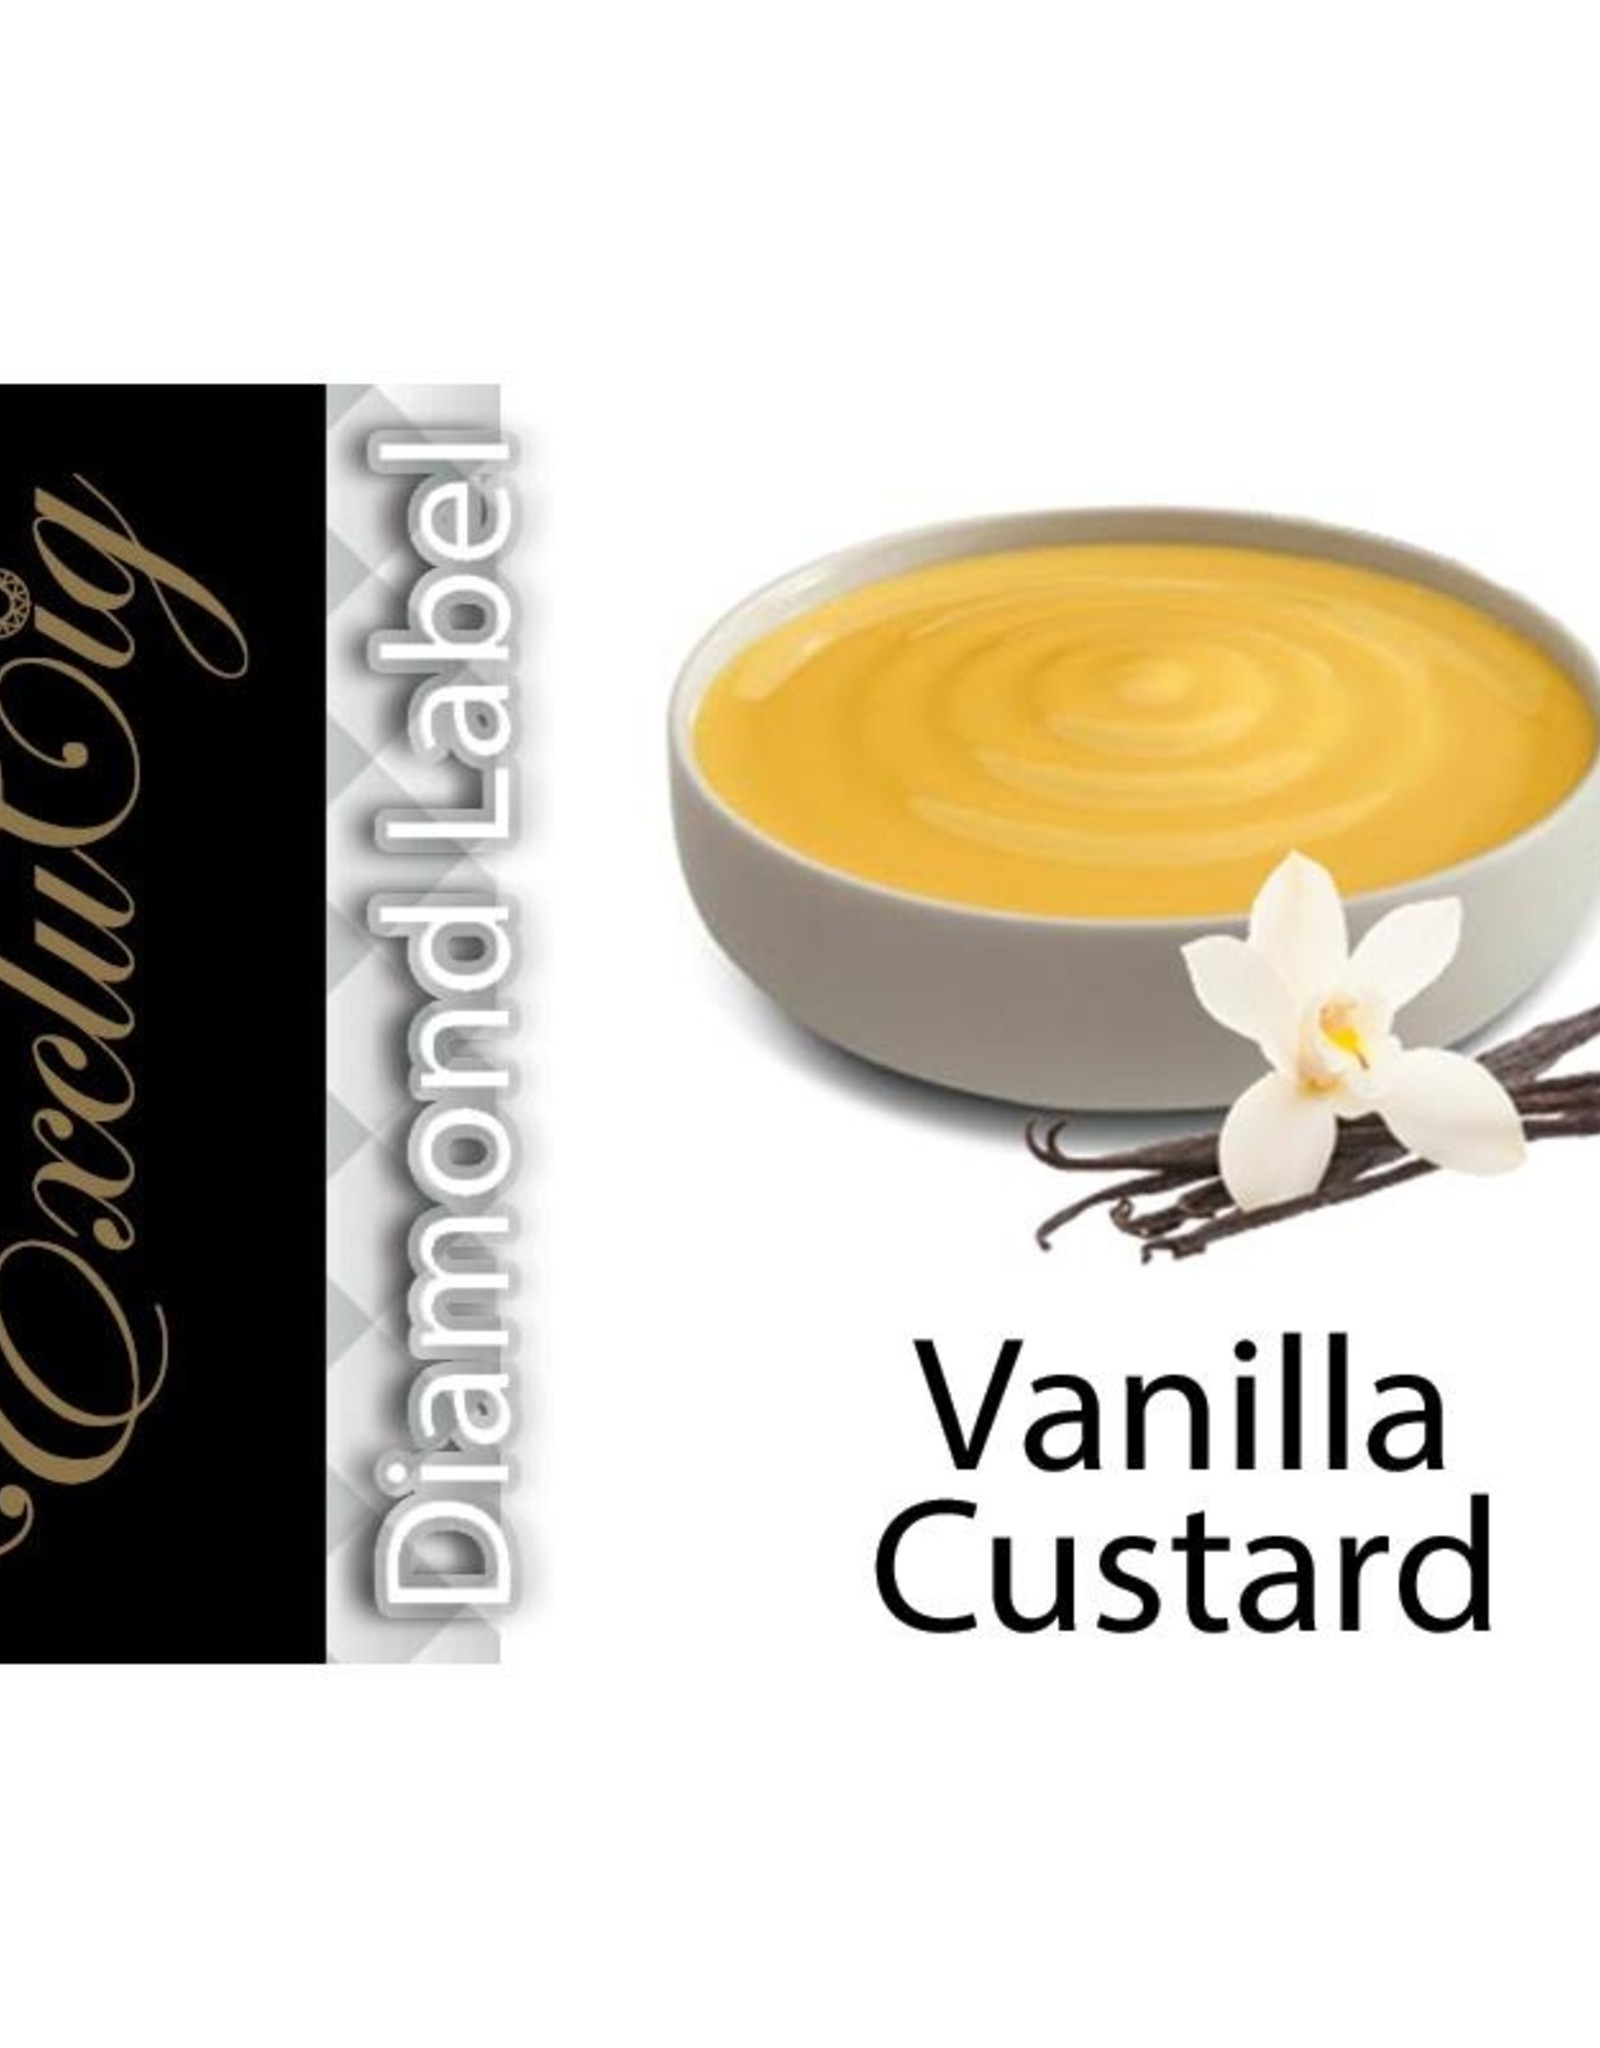 Exclucig Exclucig Diamond Label E-liquid Vanilla Custard 3 mg Nicotine